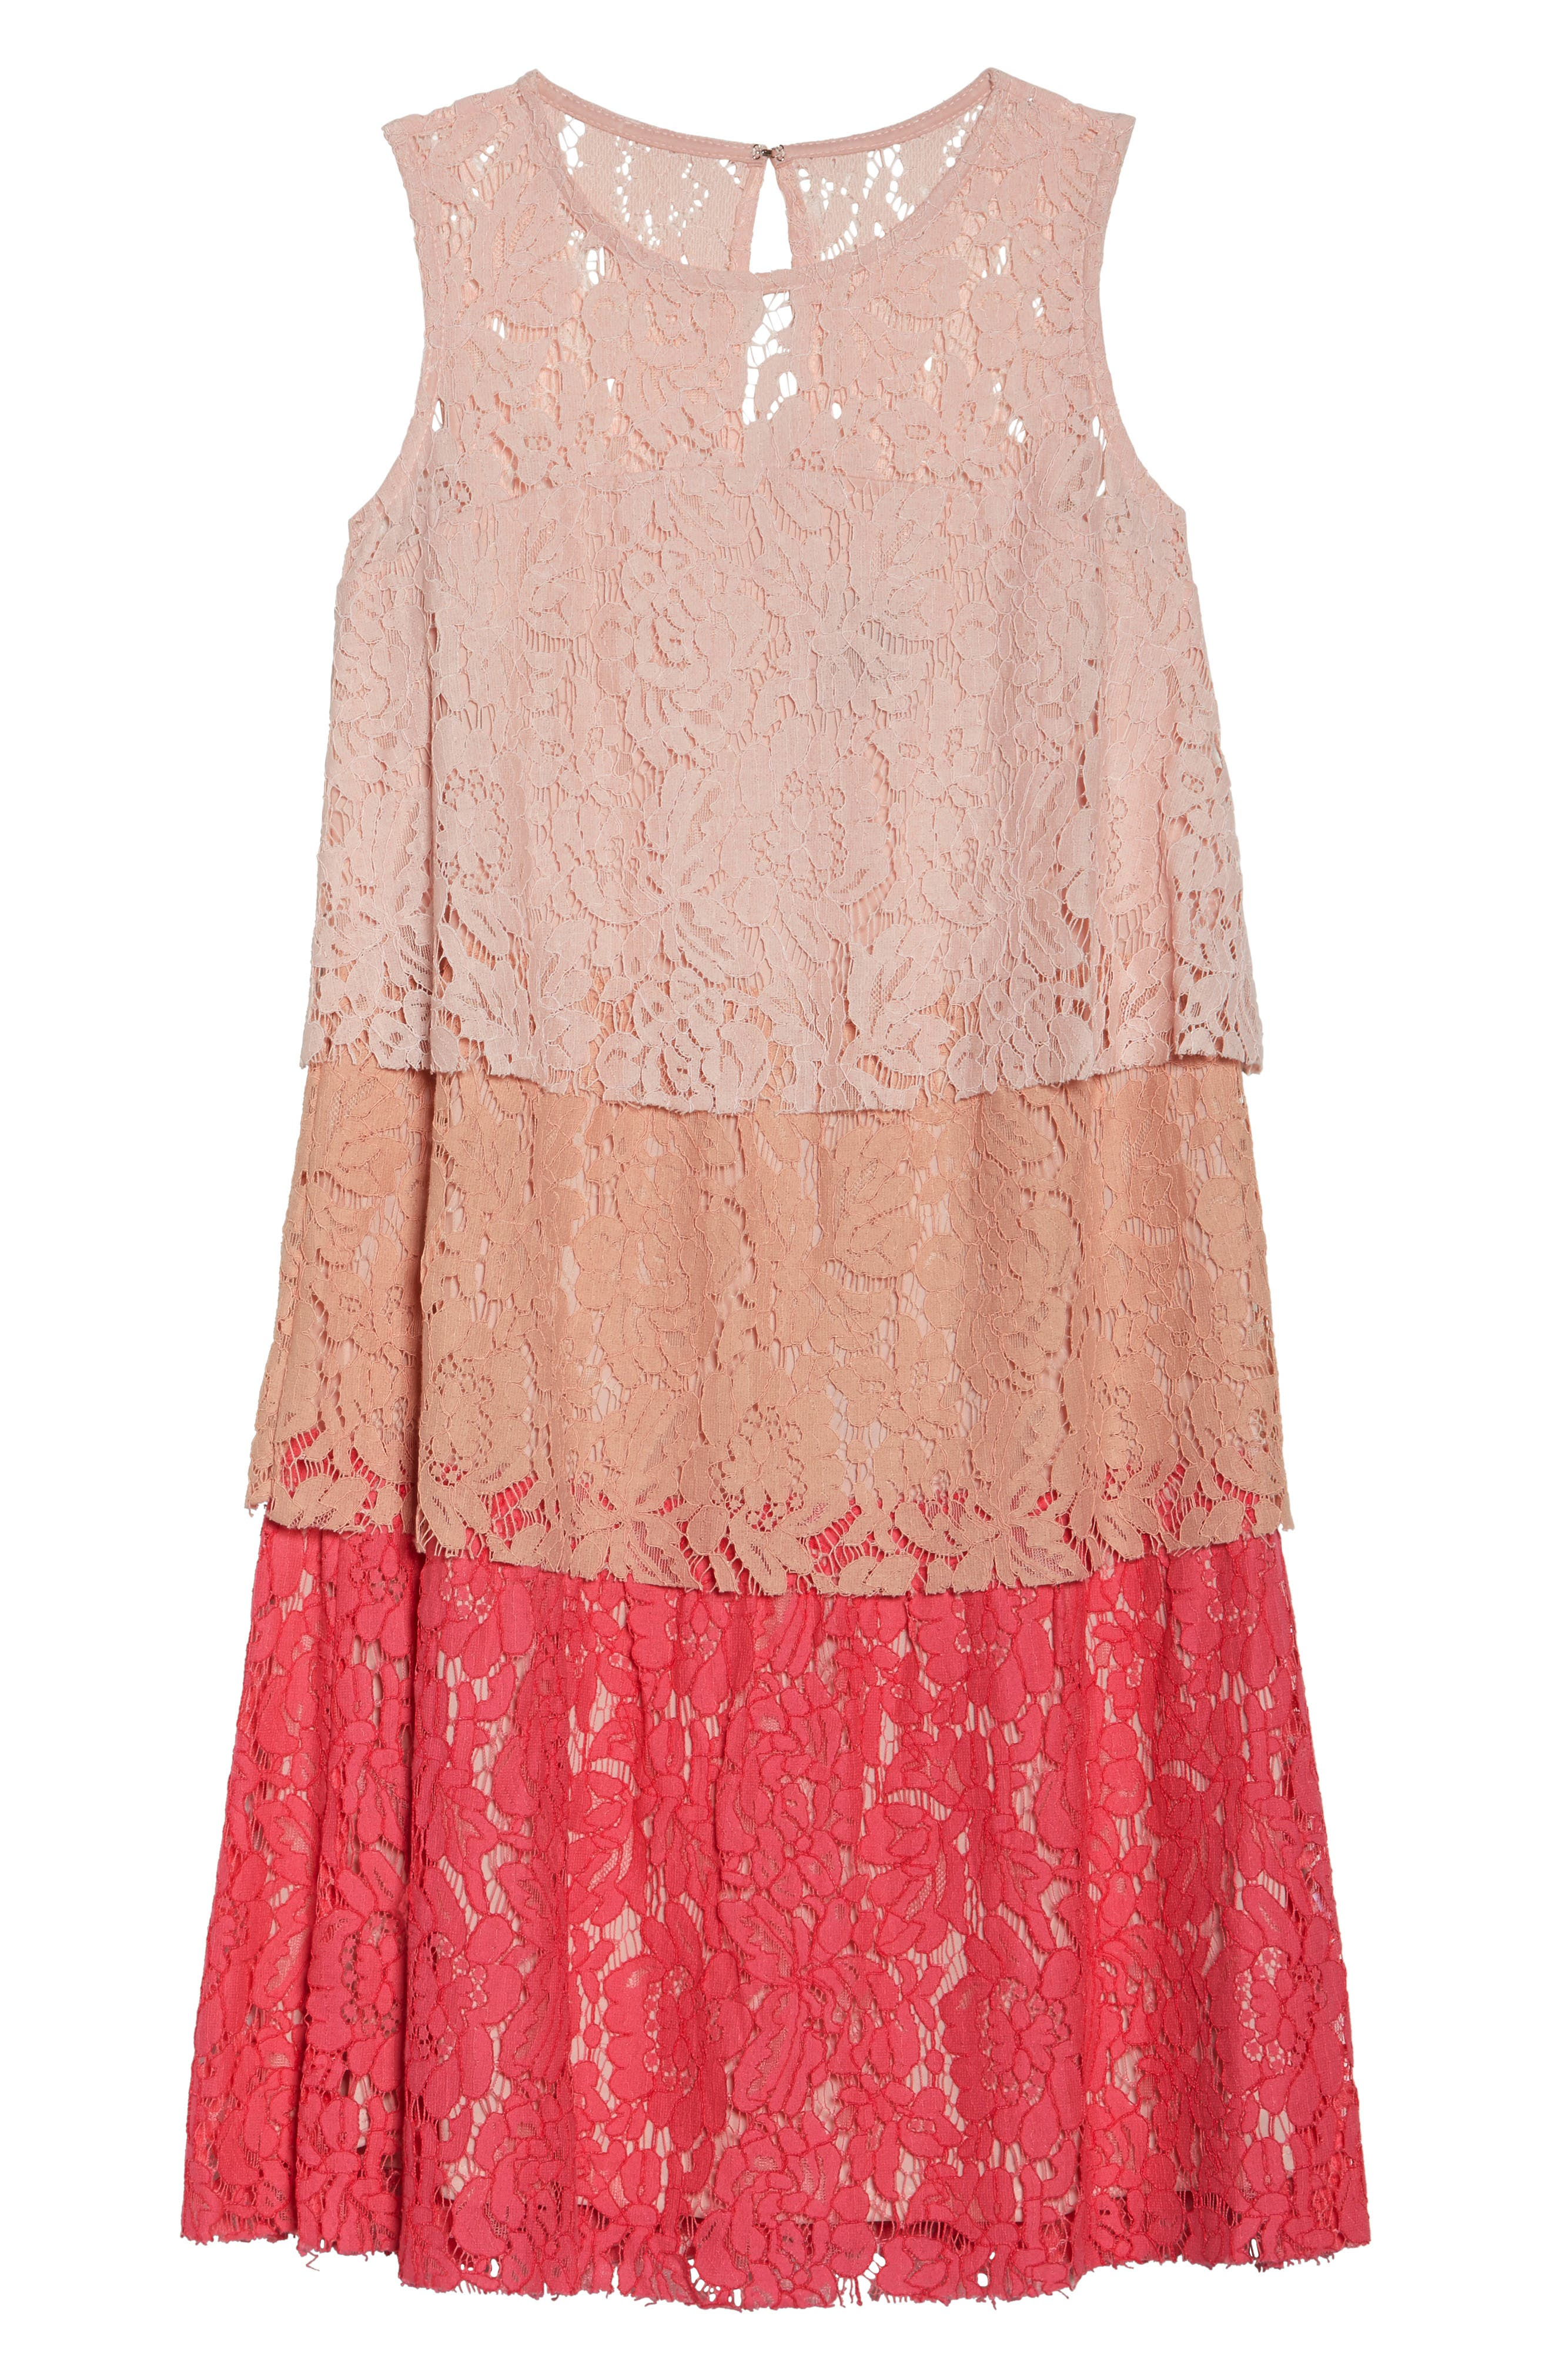 Sleeveless Tiered Lace Dress,                             Alternate thumbnail 6, color,                             663